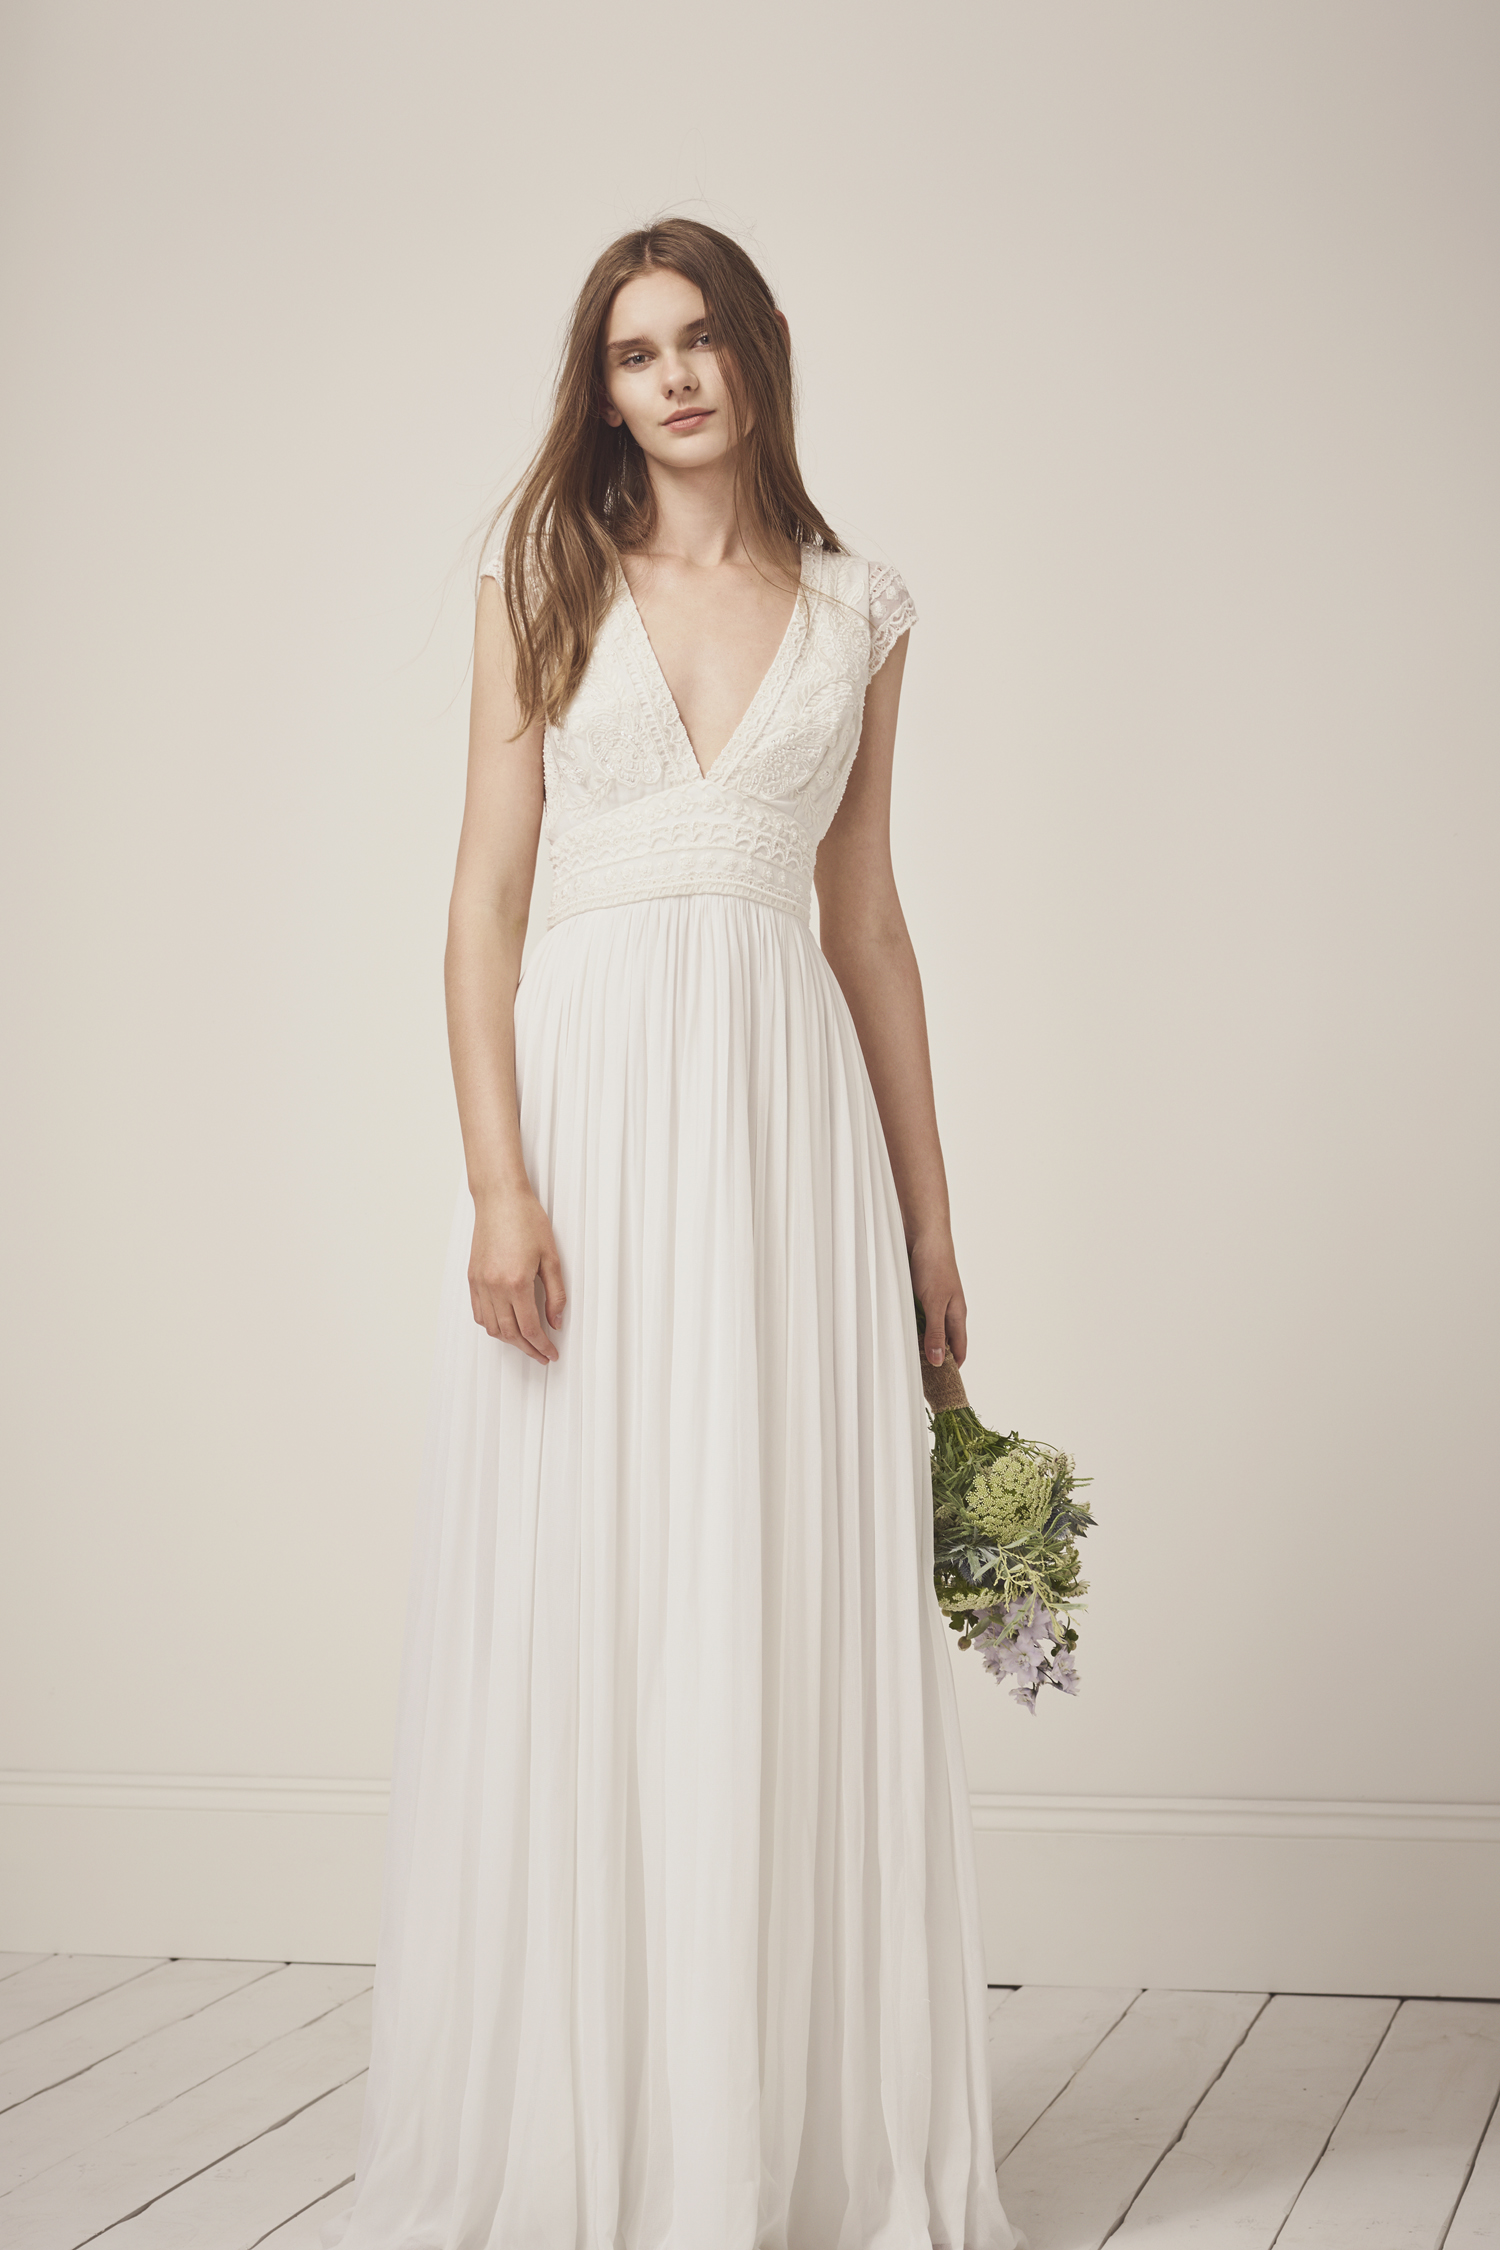 Palmero Embellished Wedding Dress Collections French Connection Usa